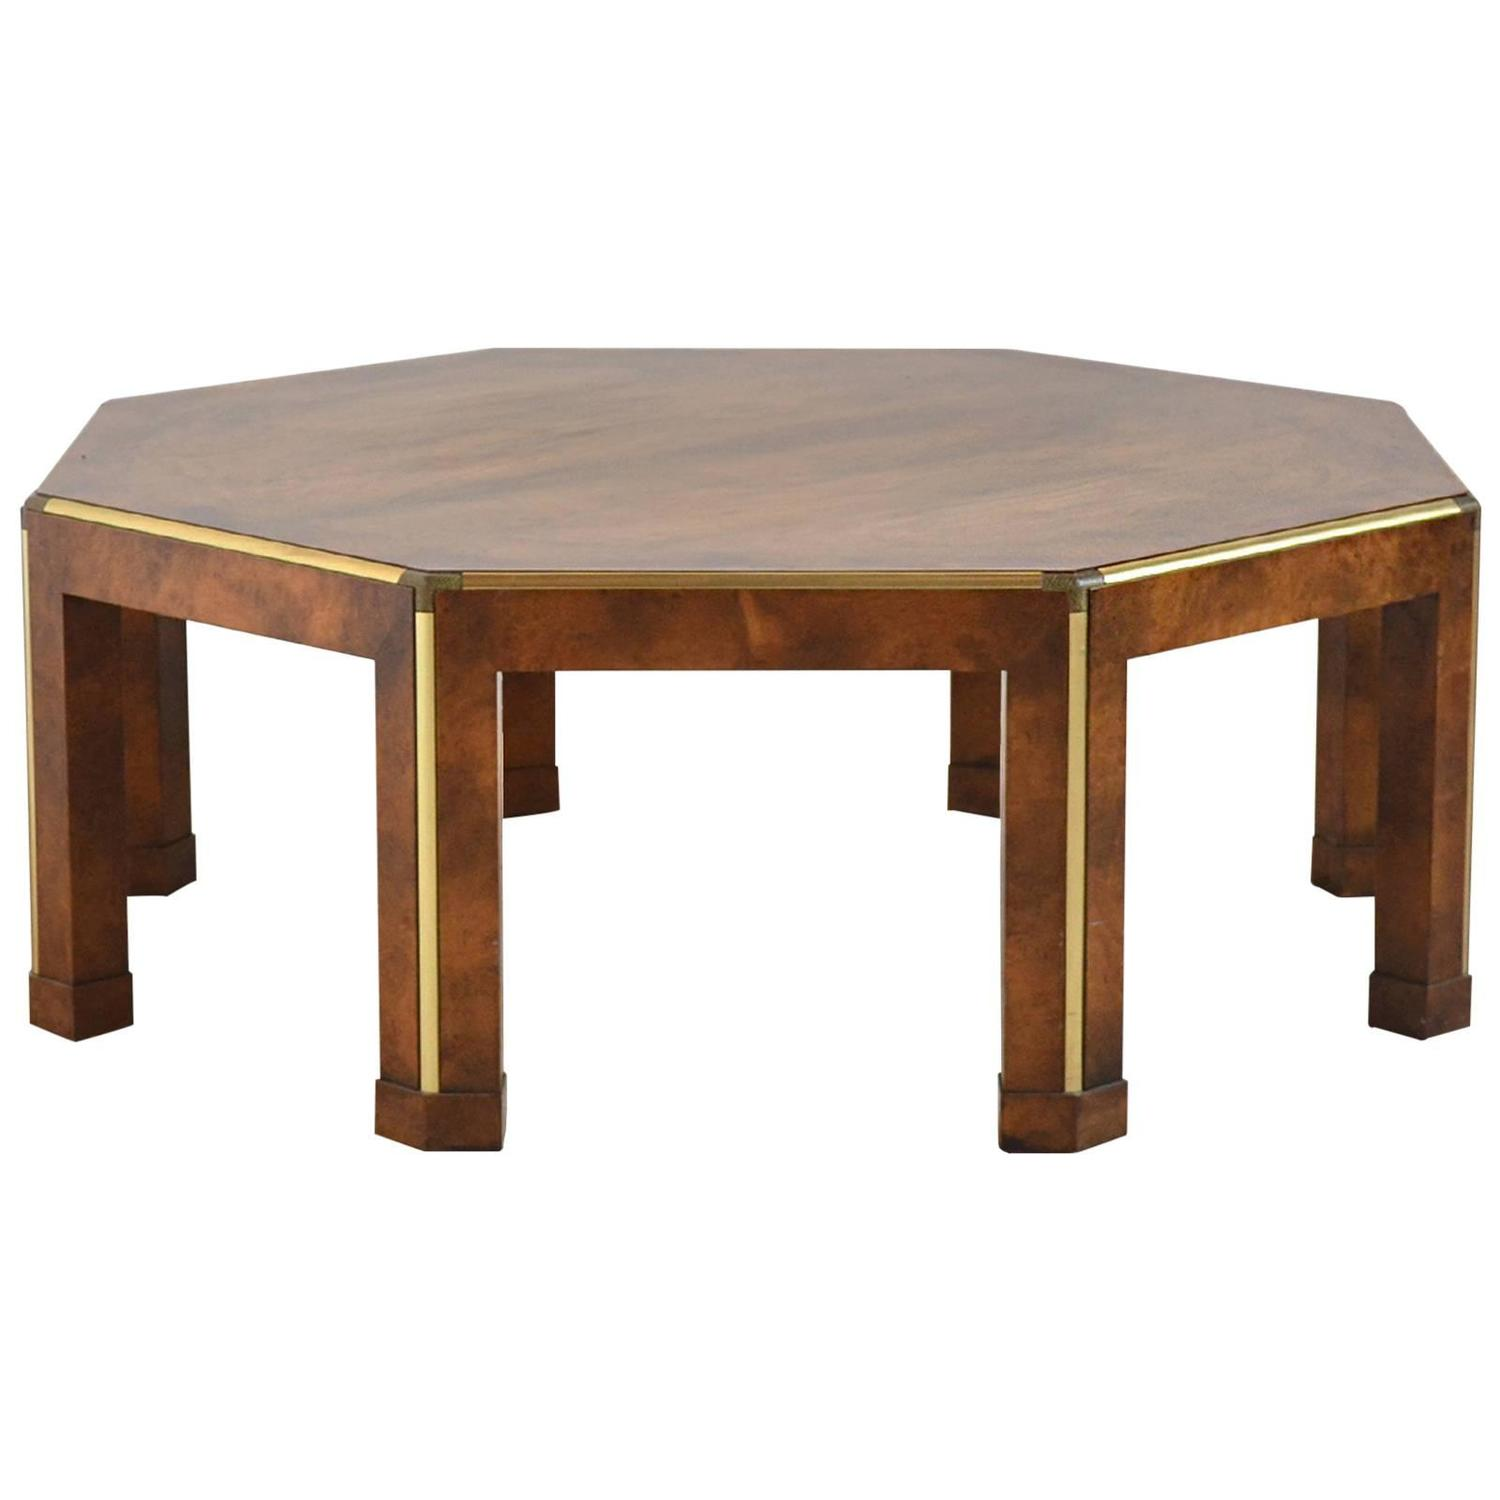 Baker octagonal burled walnut coffee table at 1stdibs for Octagon coffee table